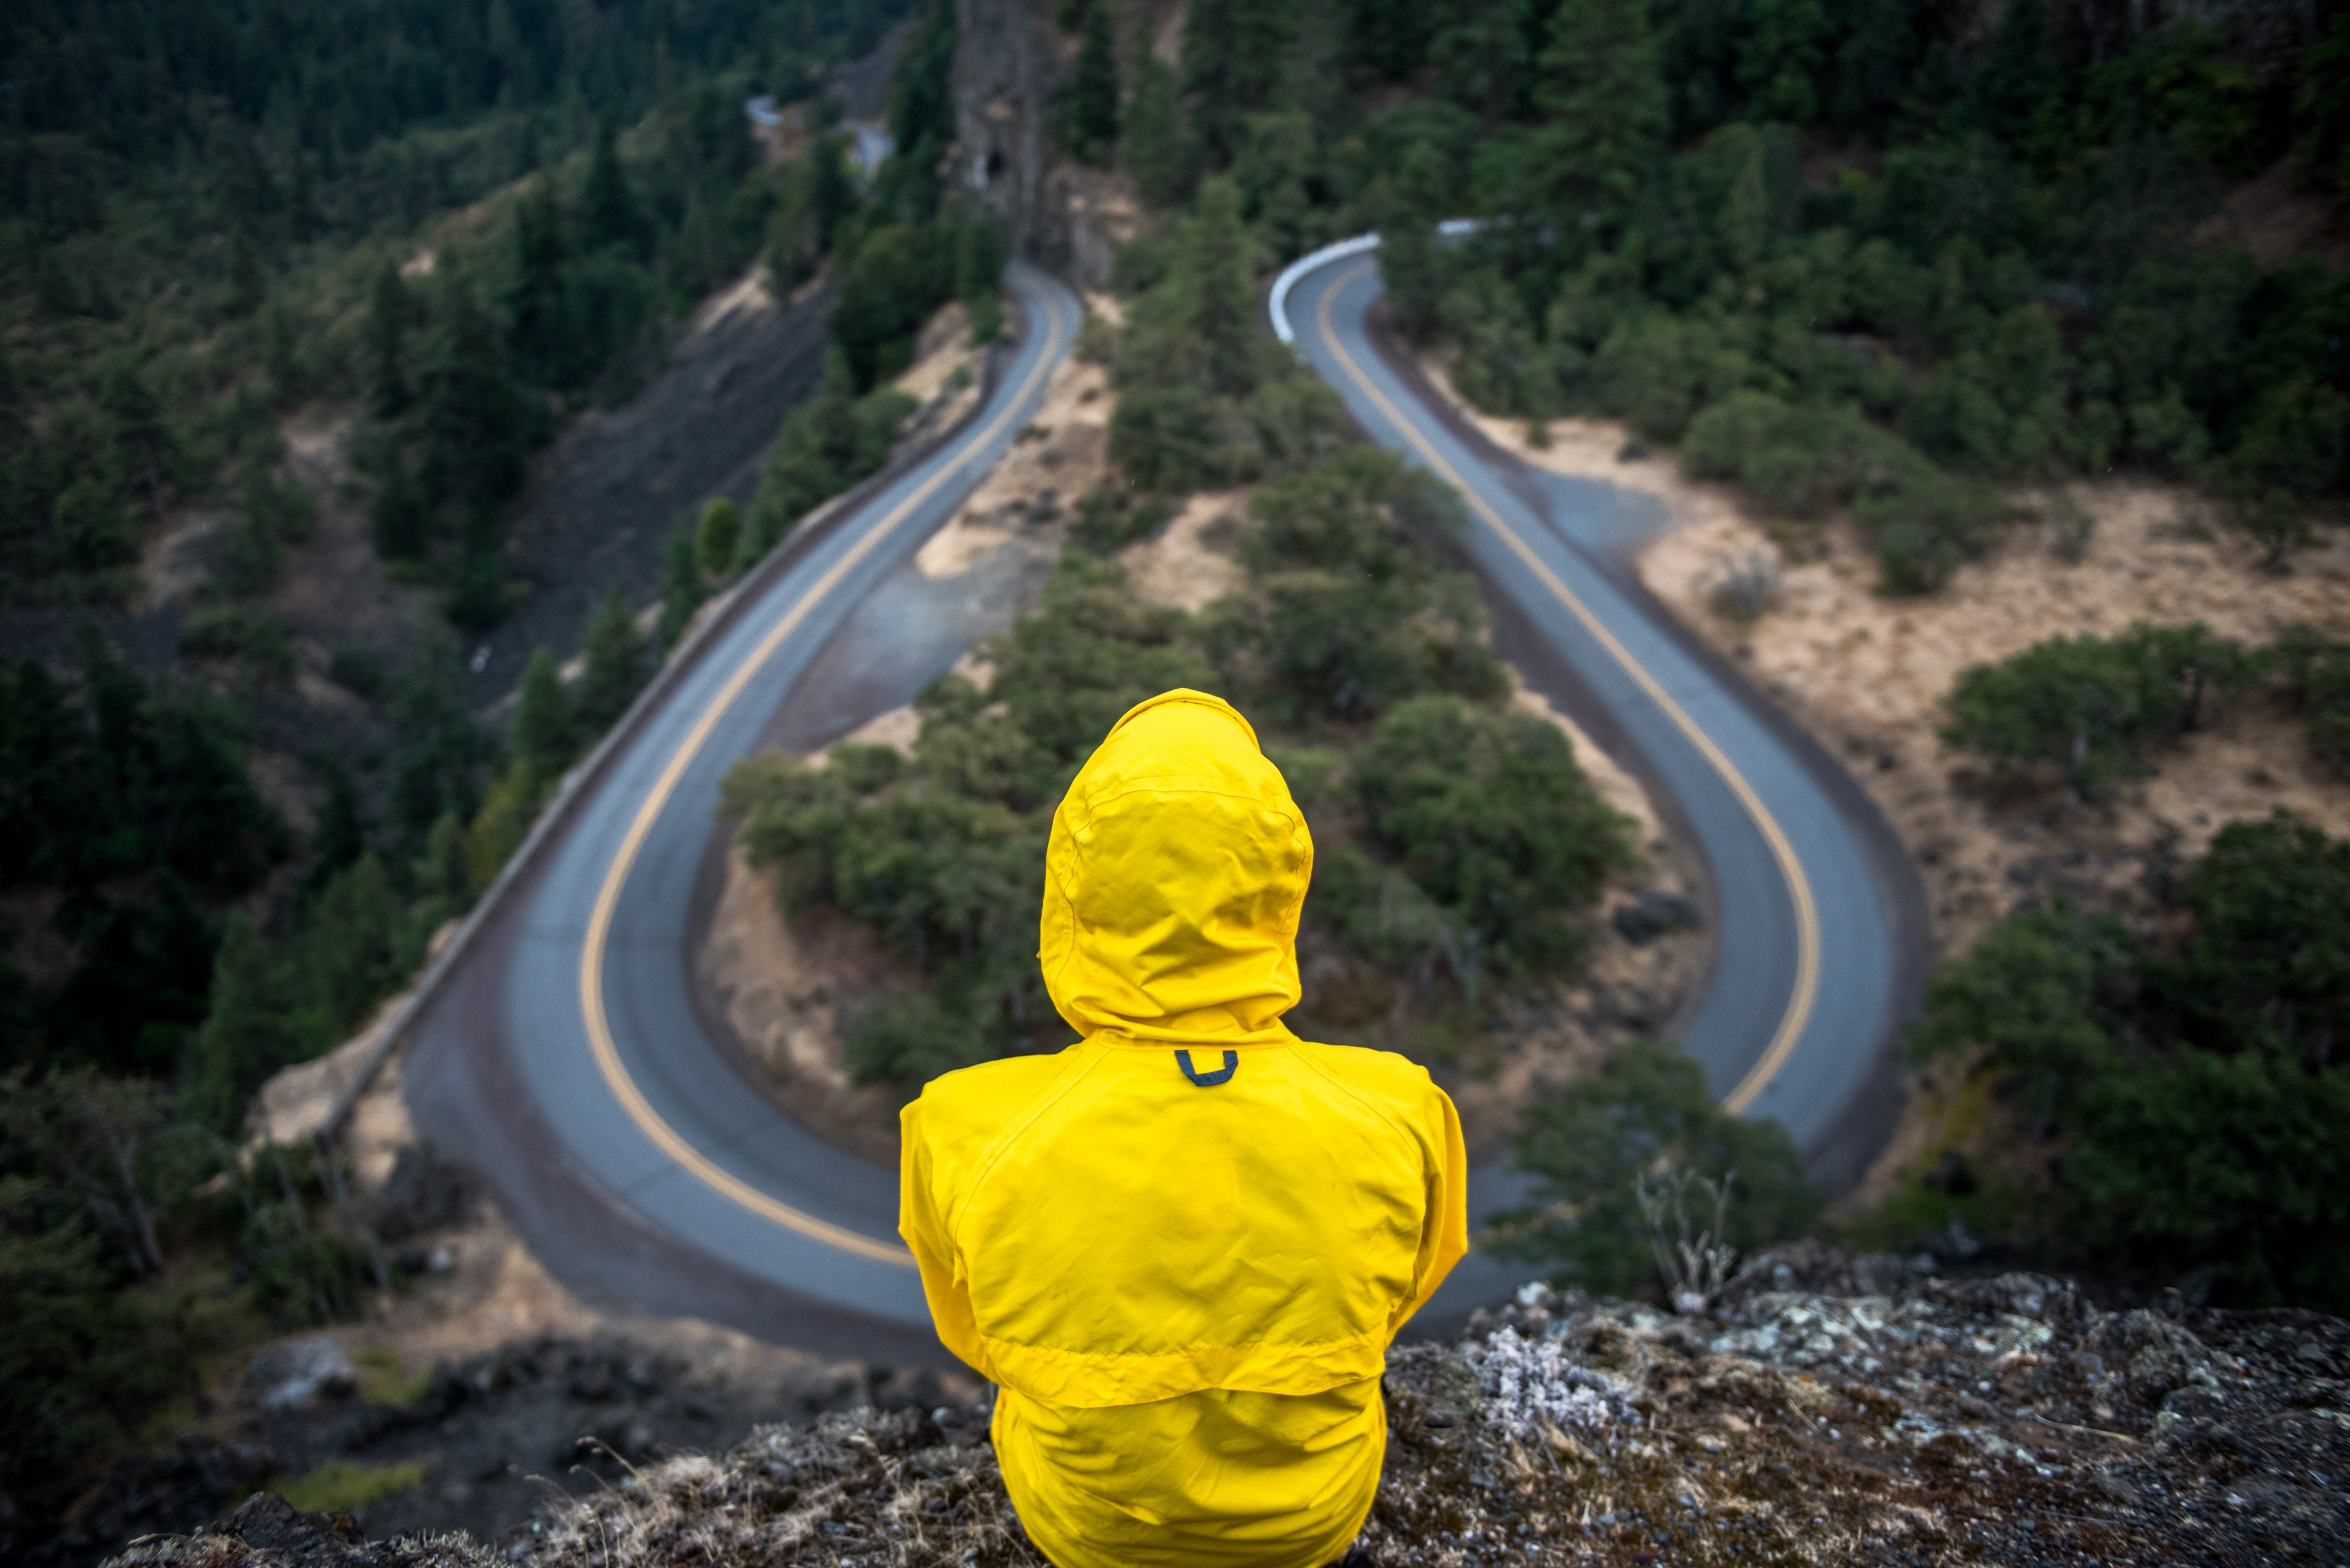 A person in a yellow rain jacket overlooks a fork in the road from on top of a hill.